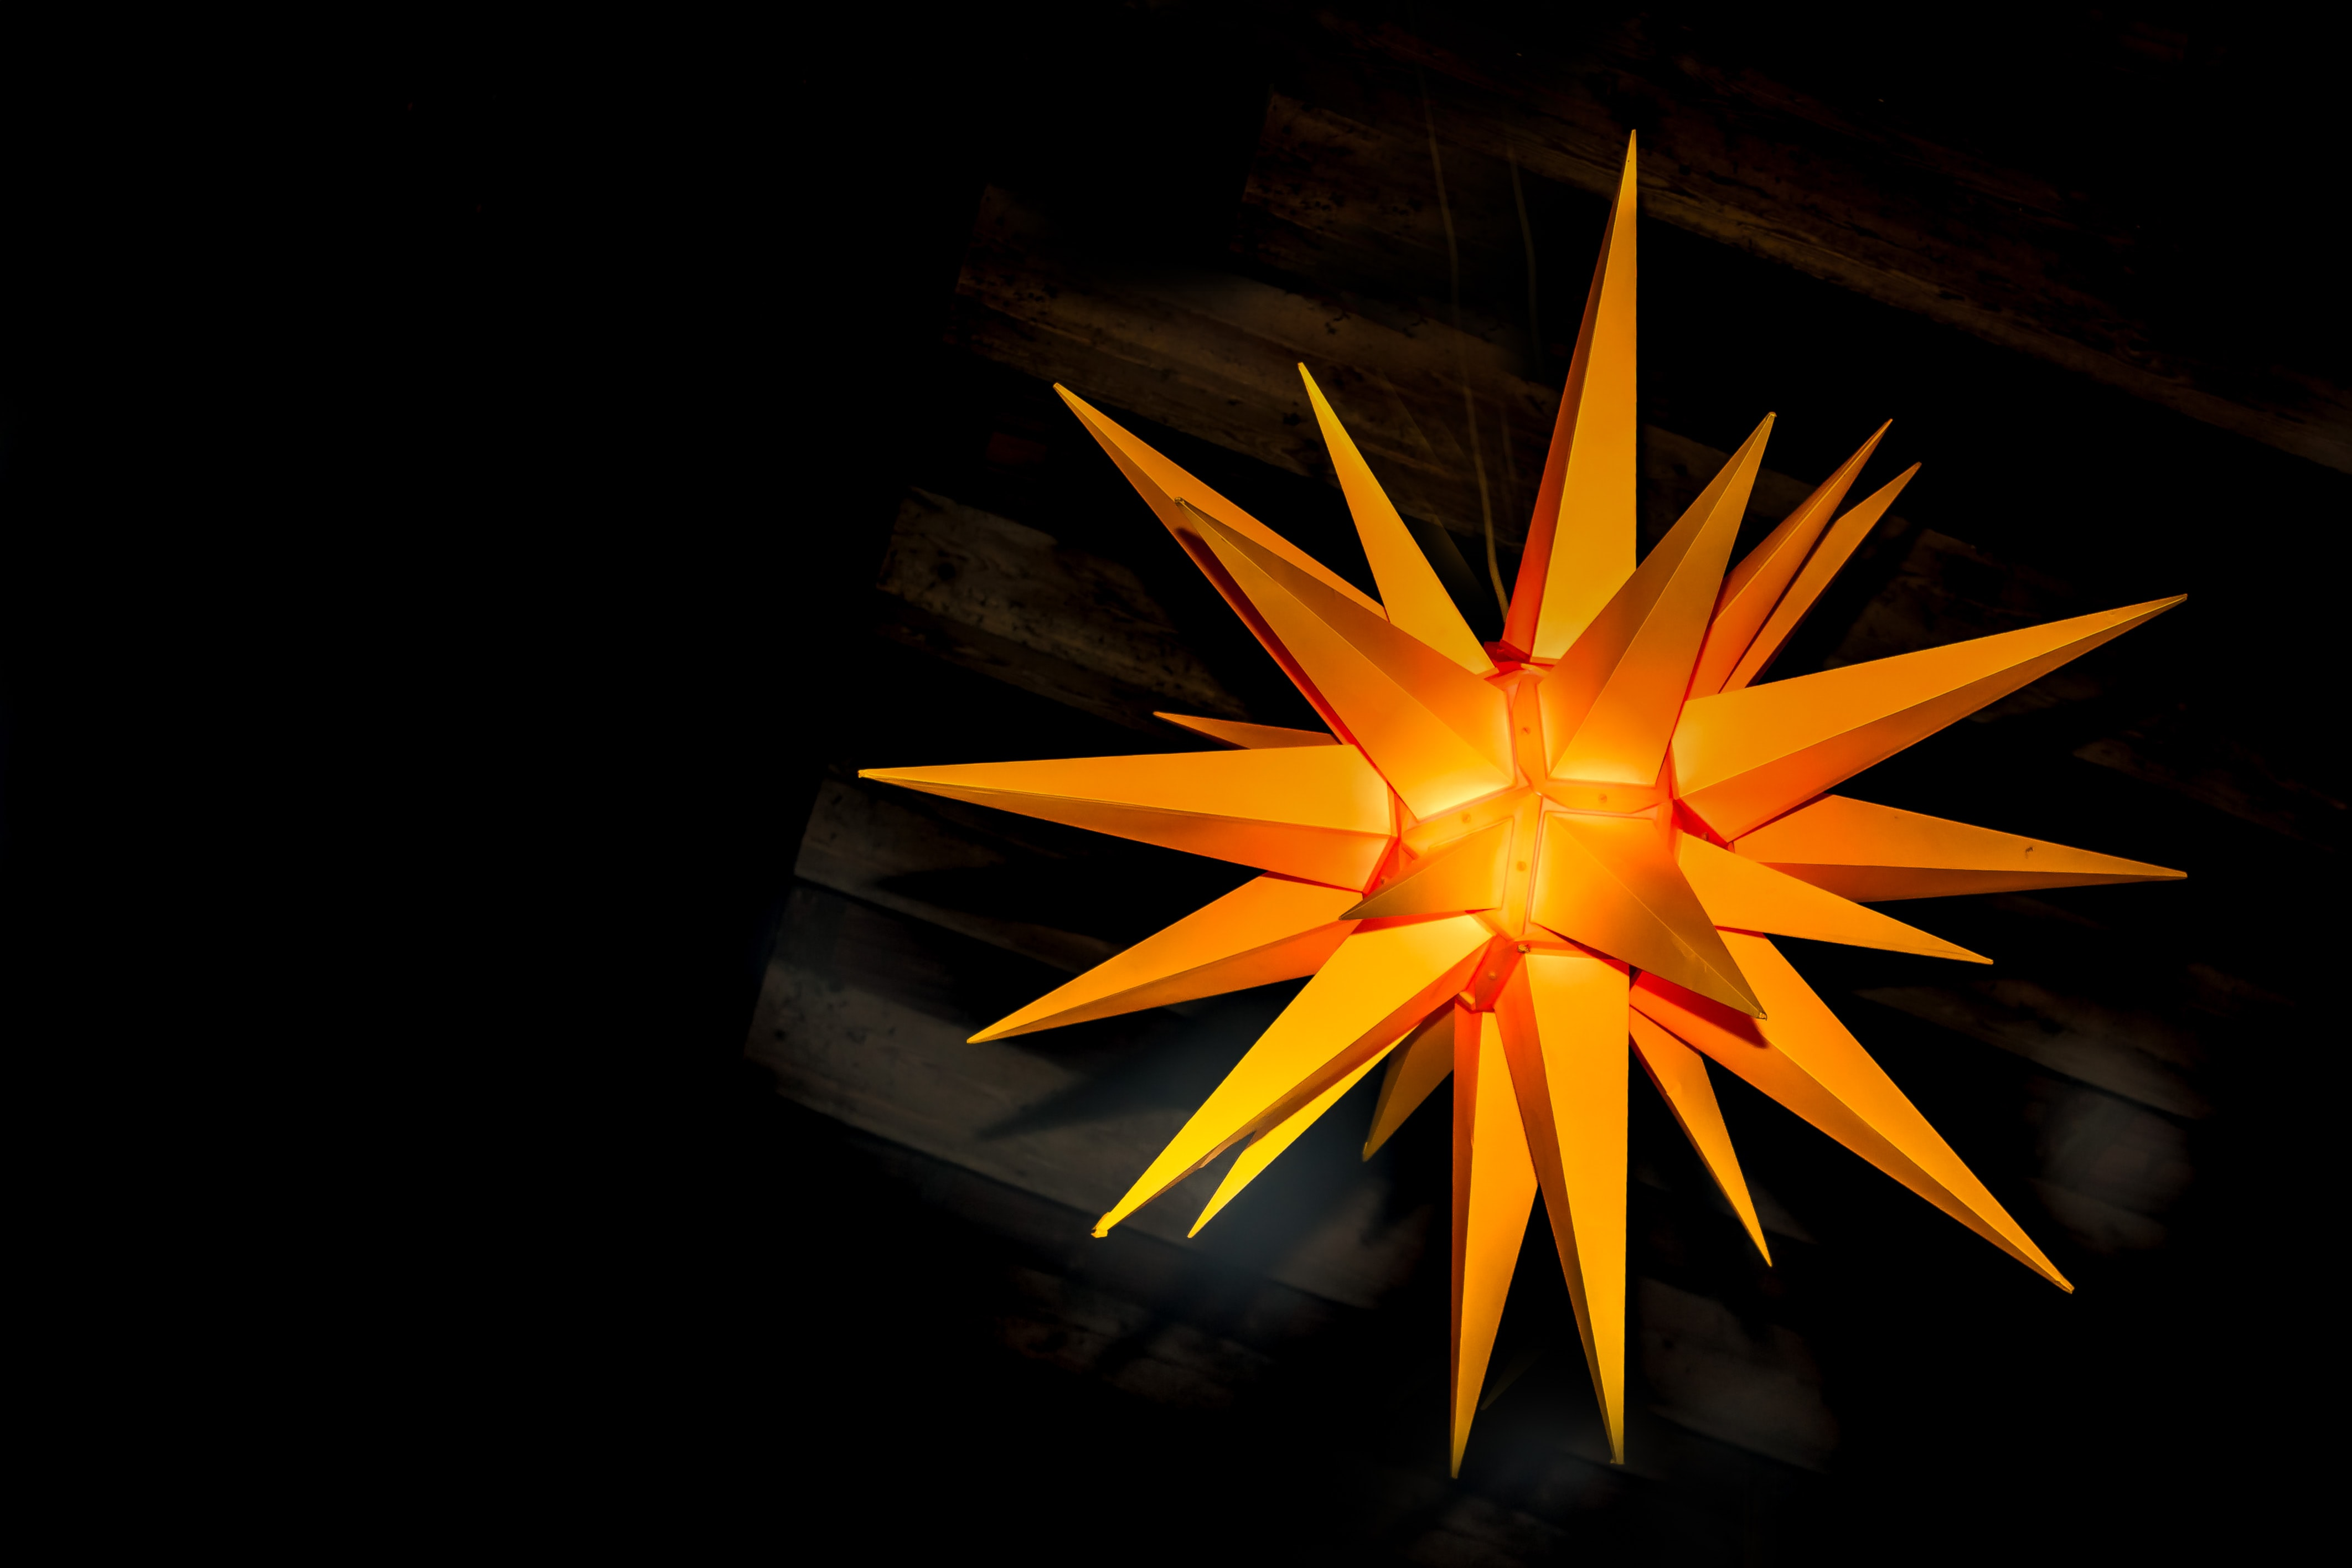 An orange decoration in the shape of multi-pointed star hanging from a ceiling